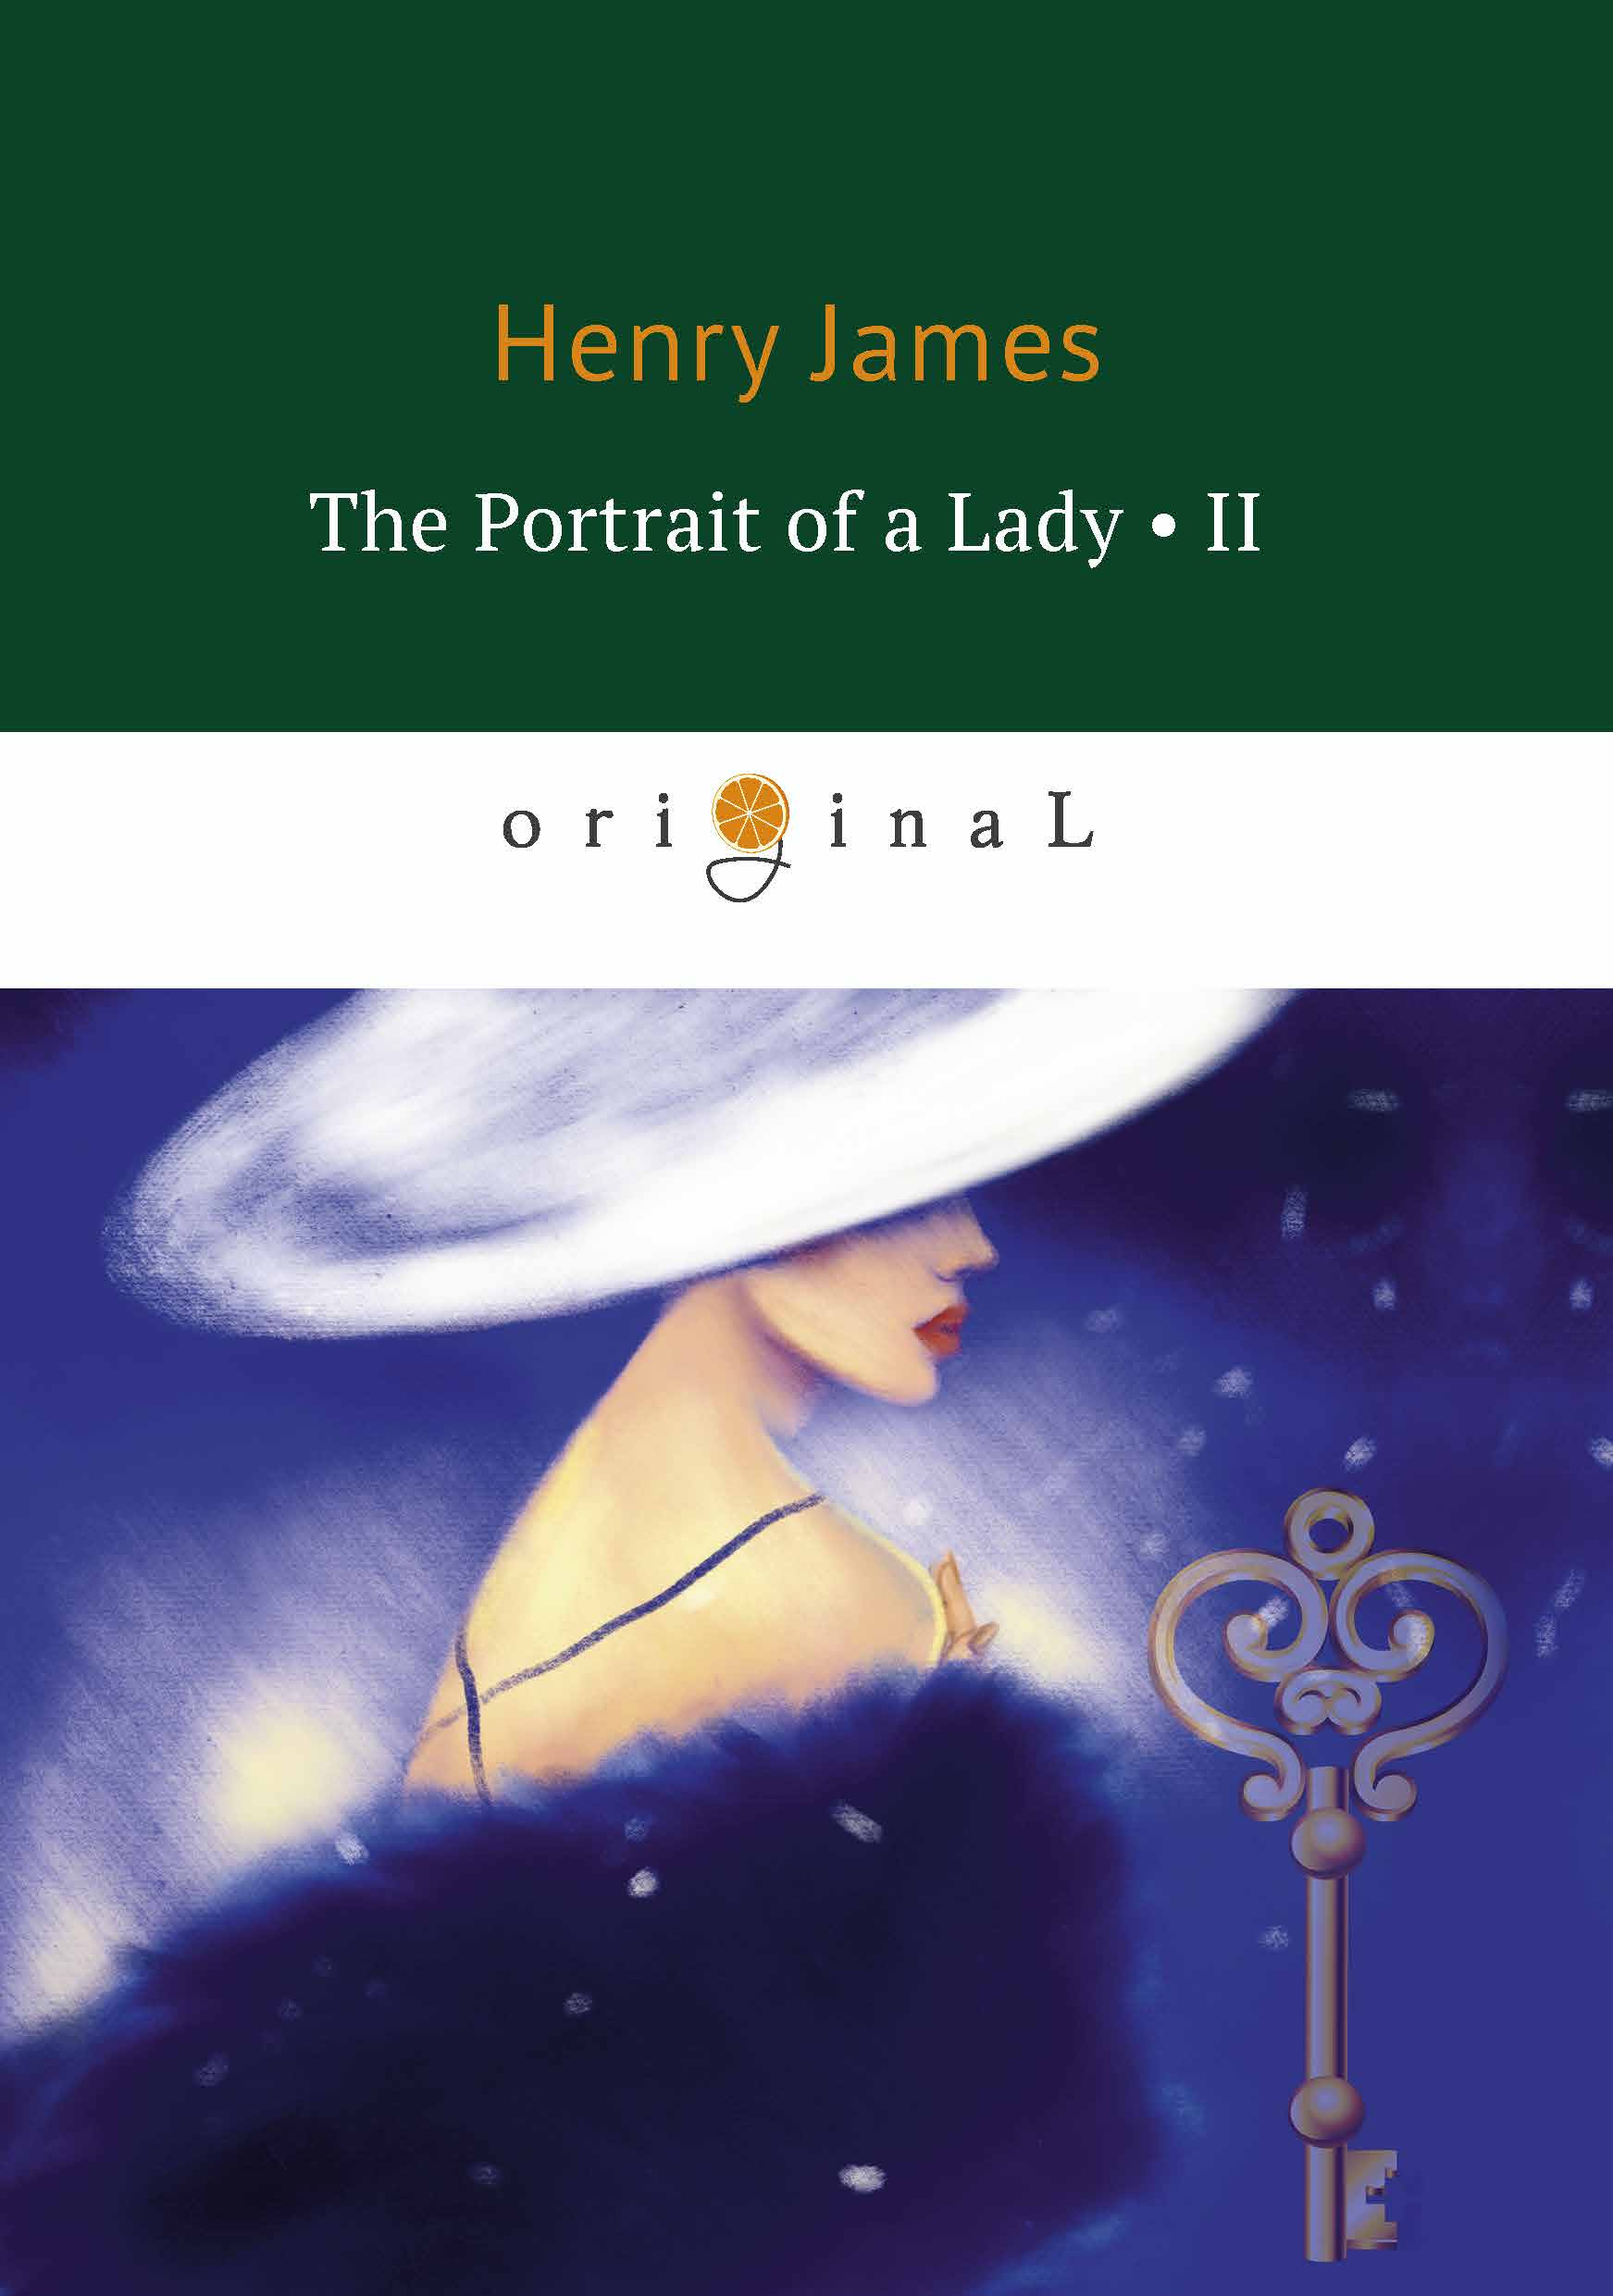 Henry James The Portrait of a Lady II